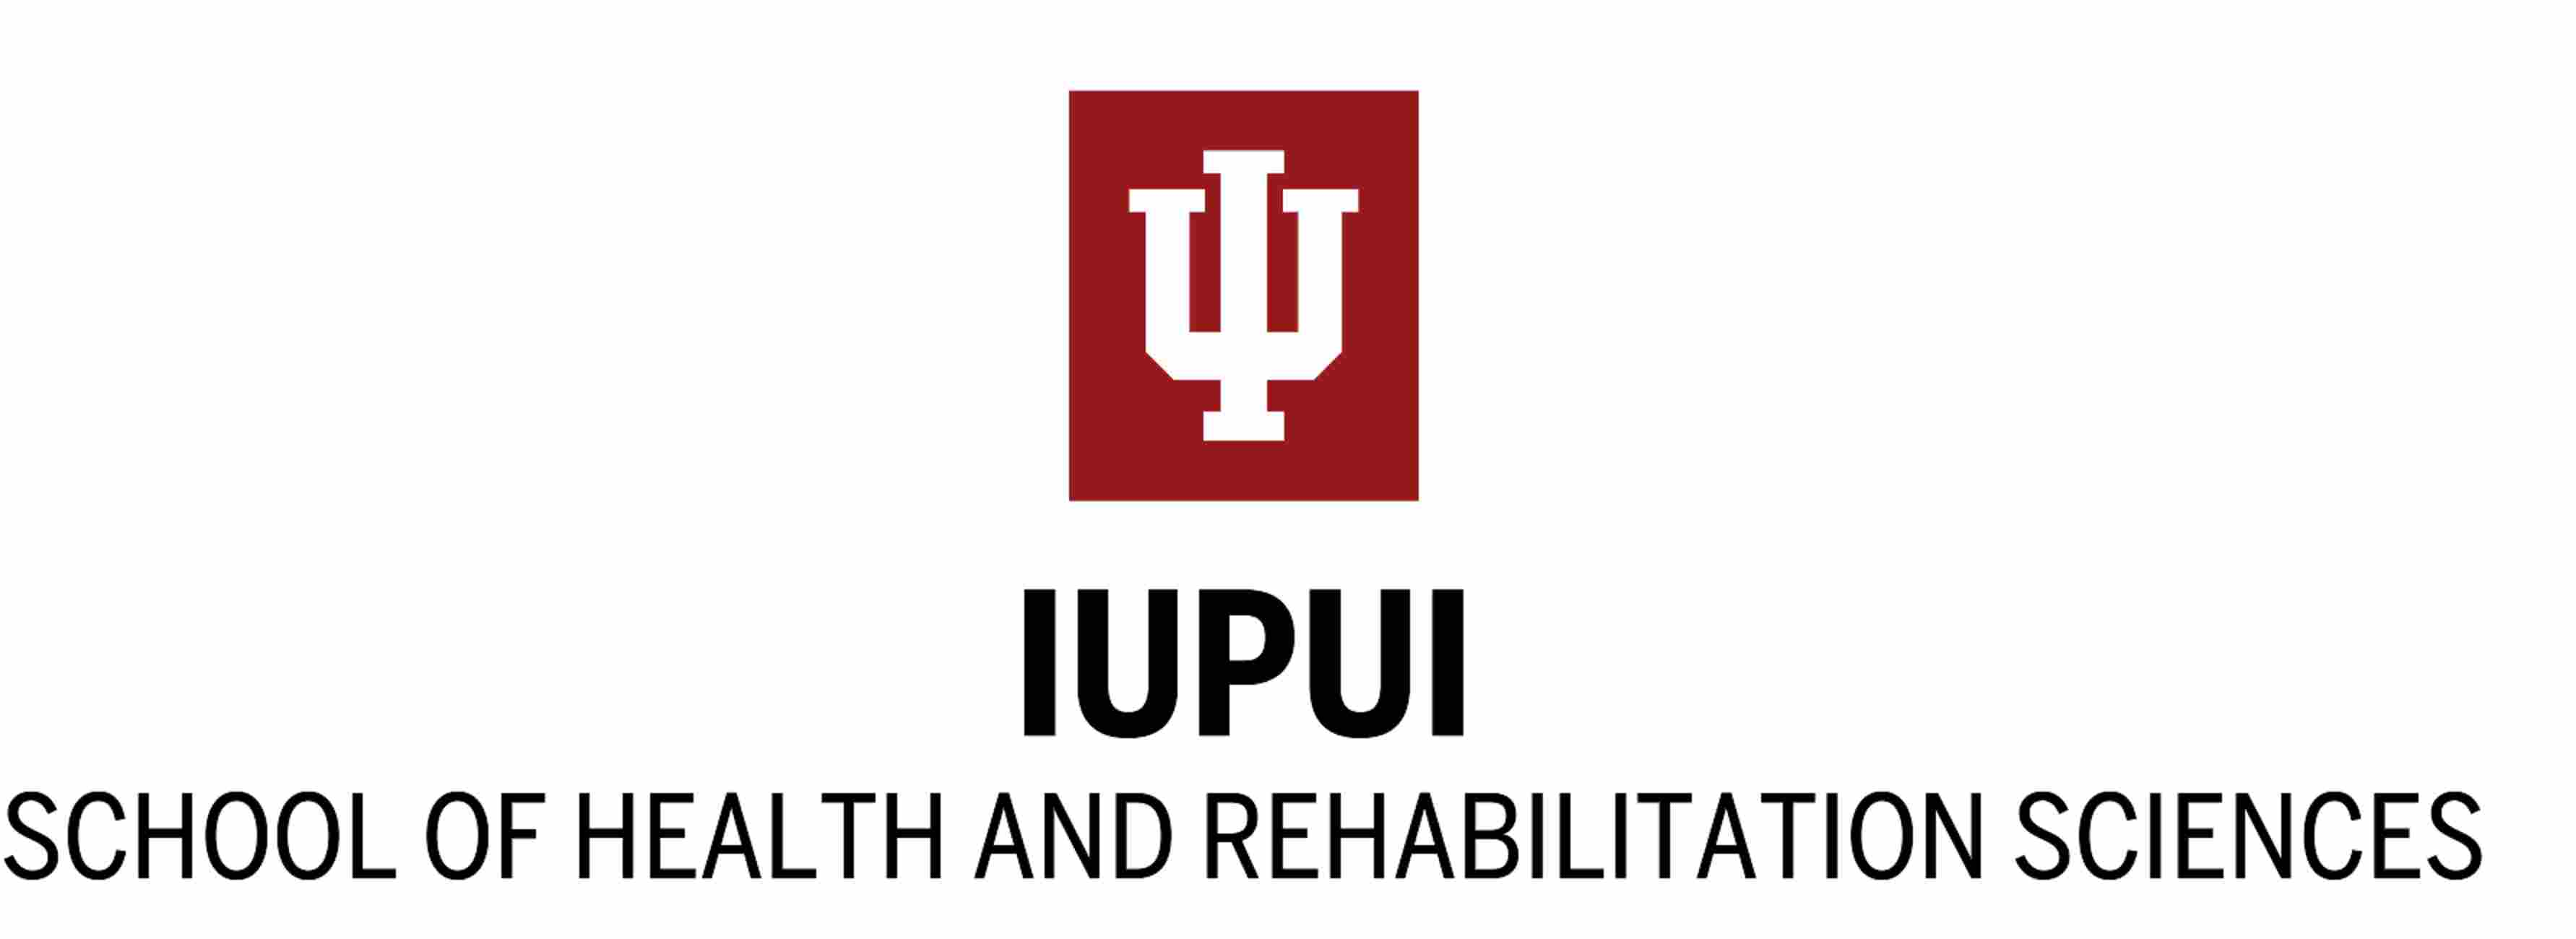 IUPUI-school-of-health-rehab-sciences